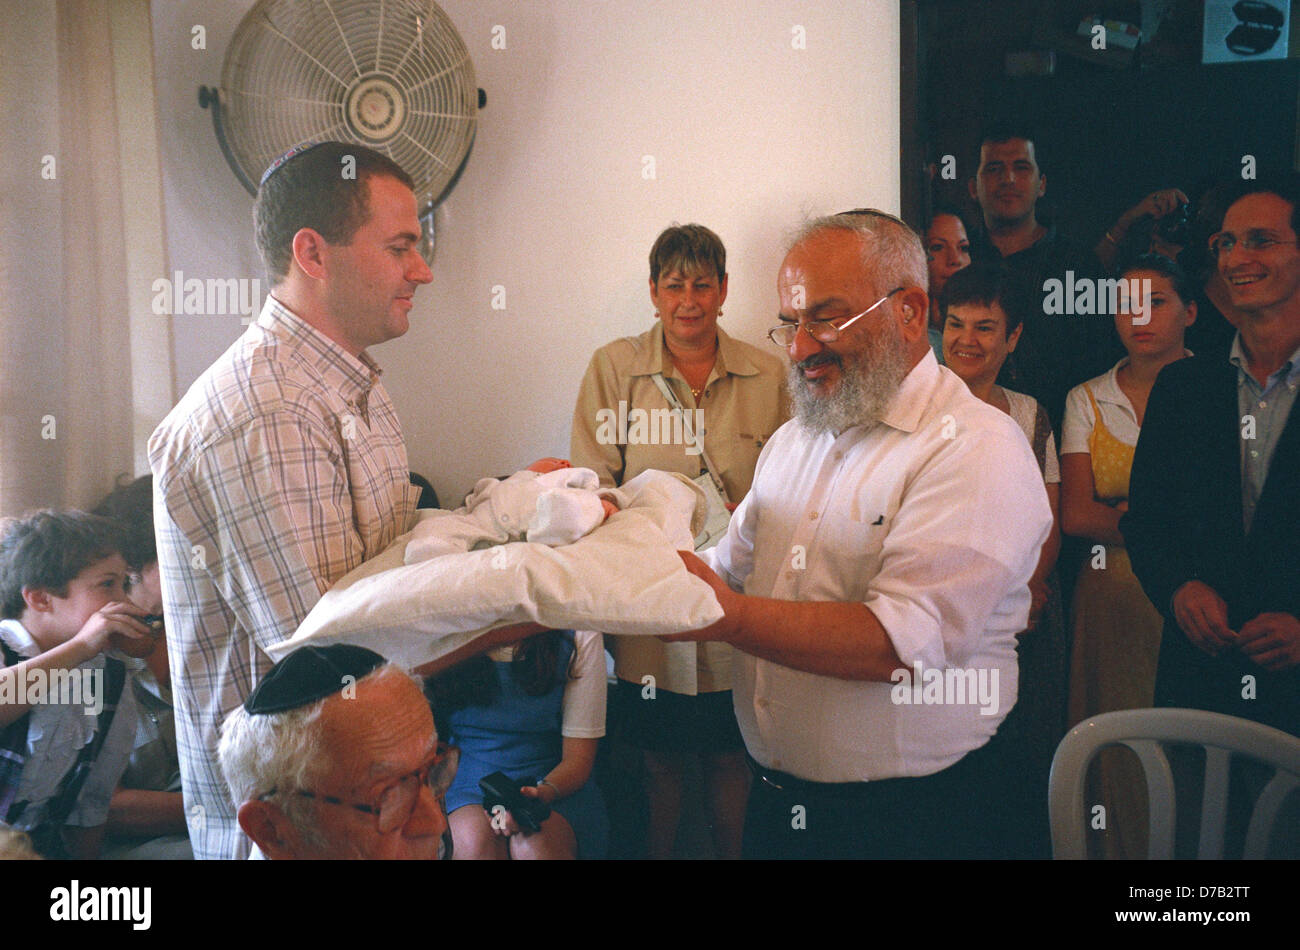 Ceremony of Redemption of The First Born Son - Stock Image